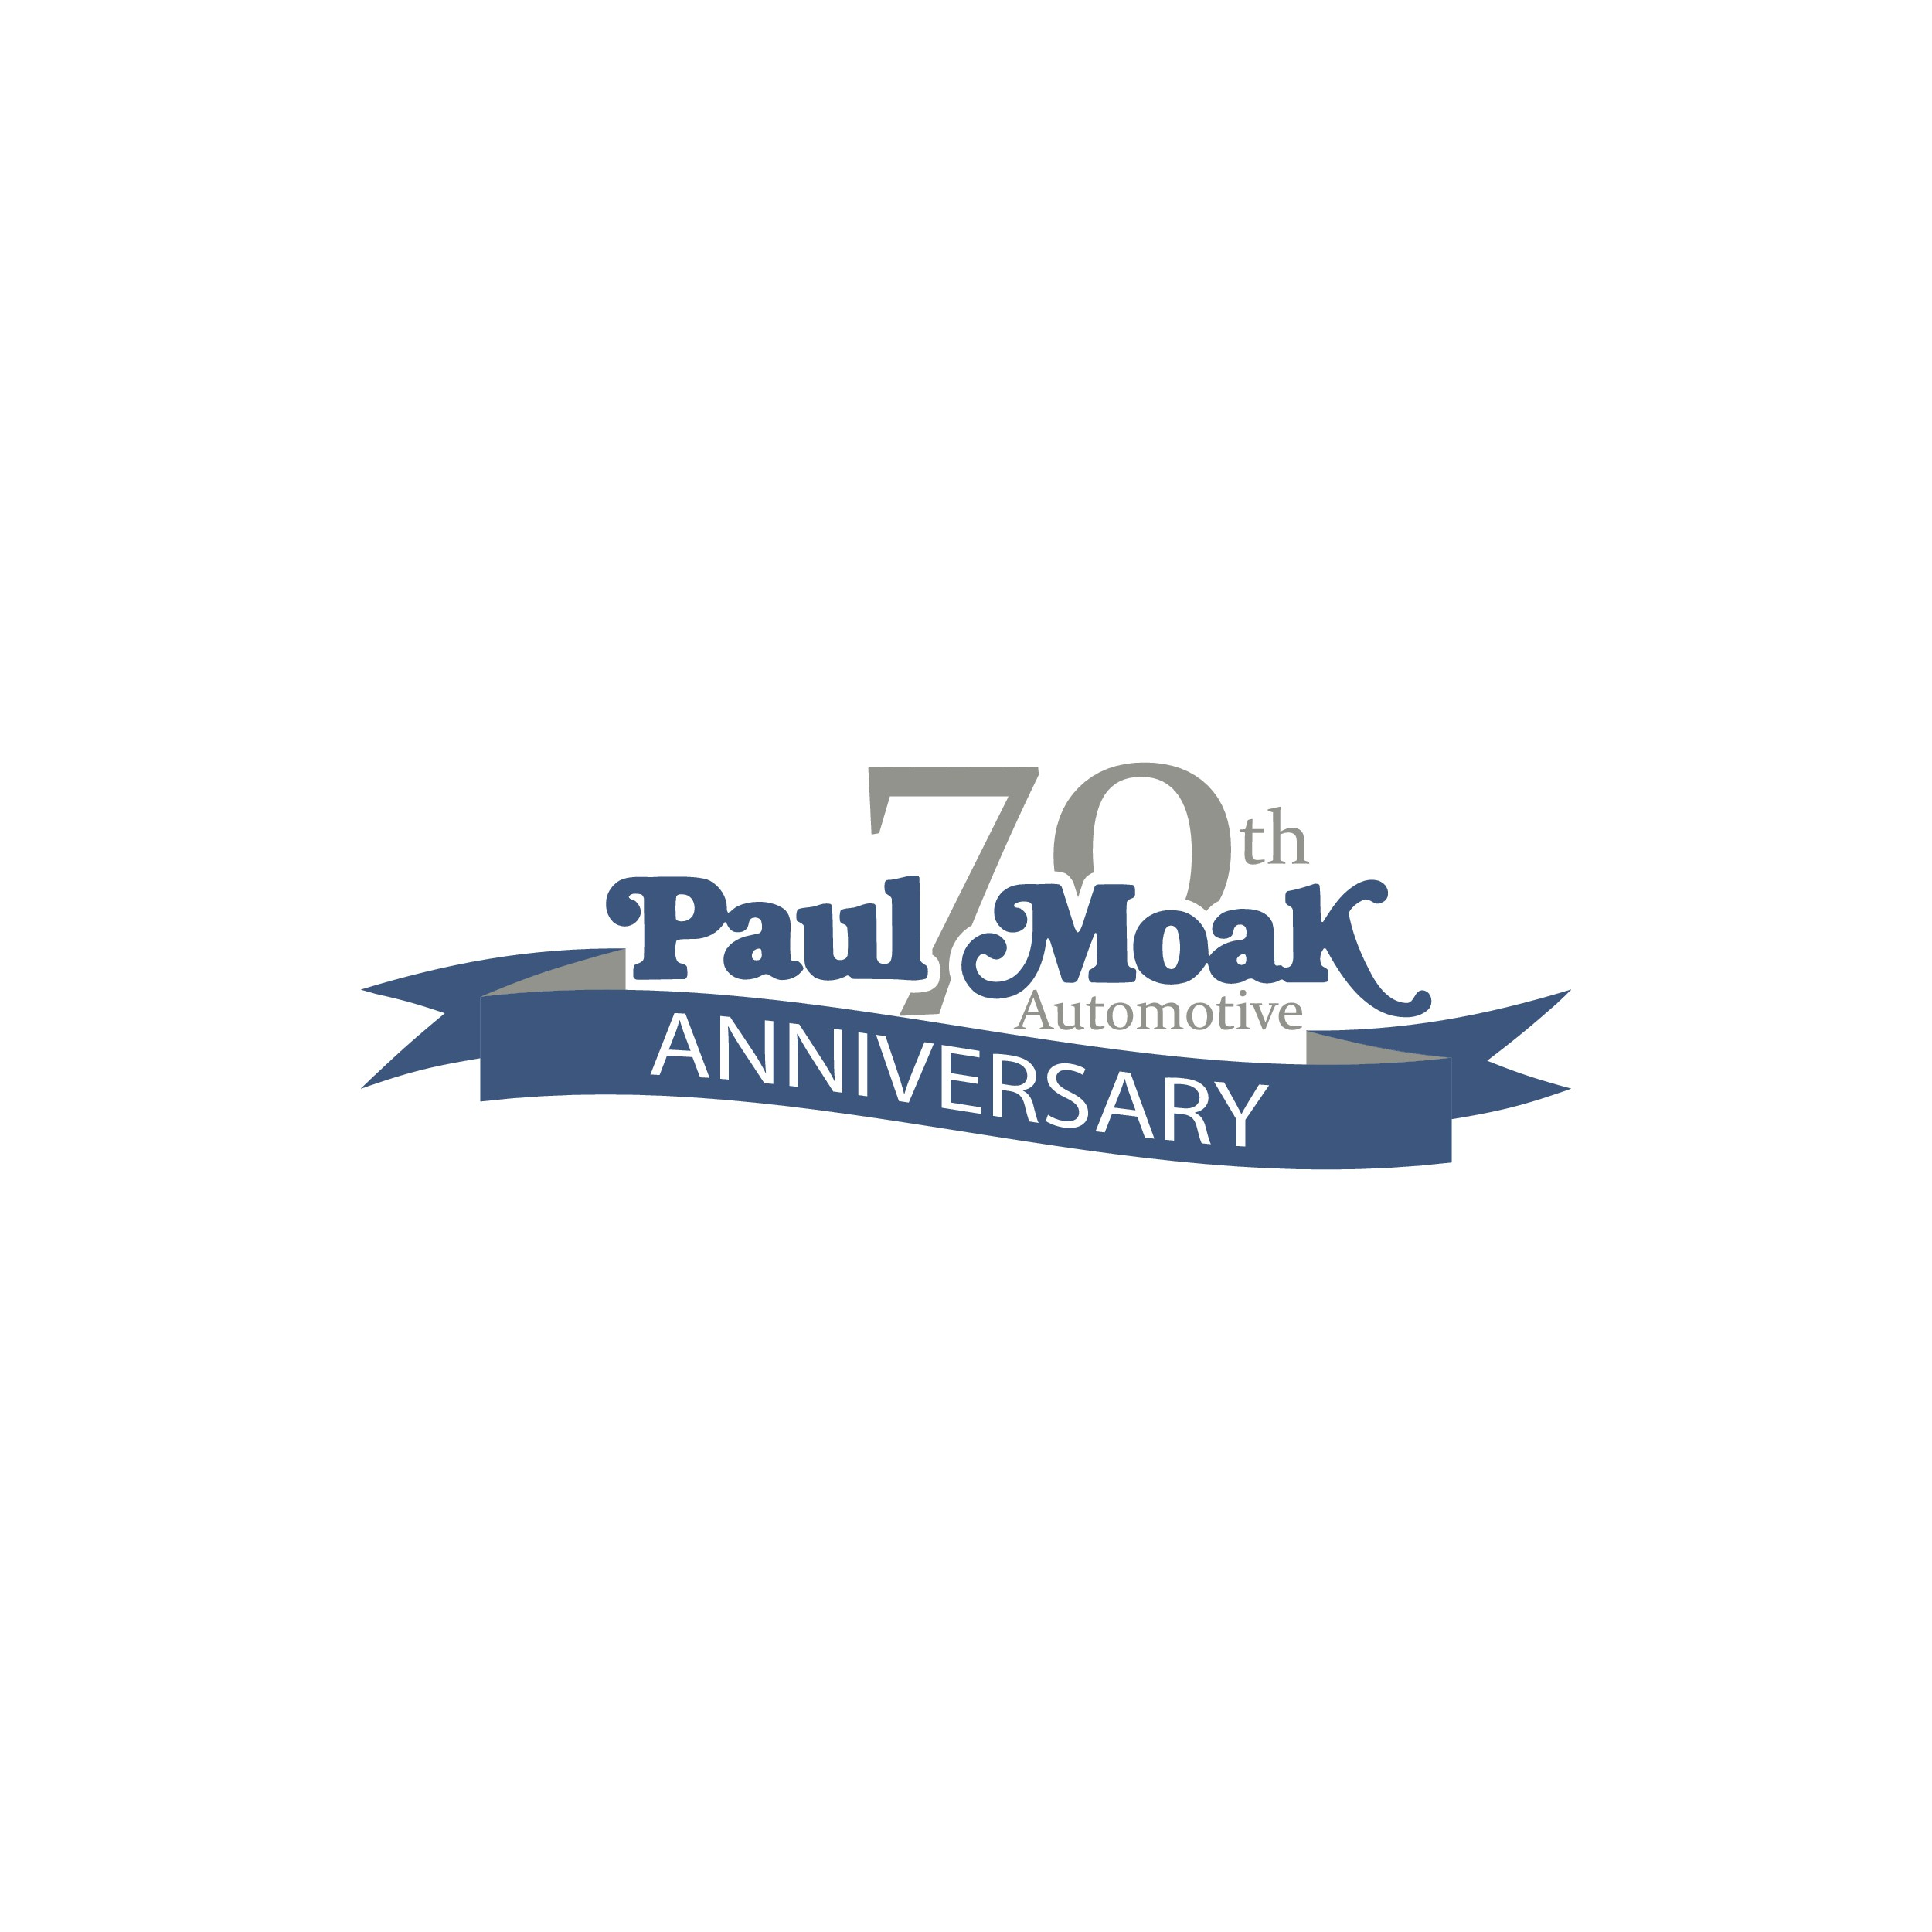 We're Celebrating 70 Years of Business and Need a Cool Logo!